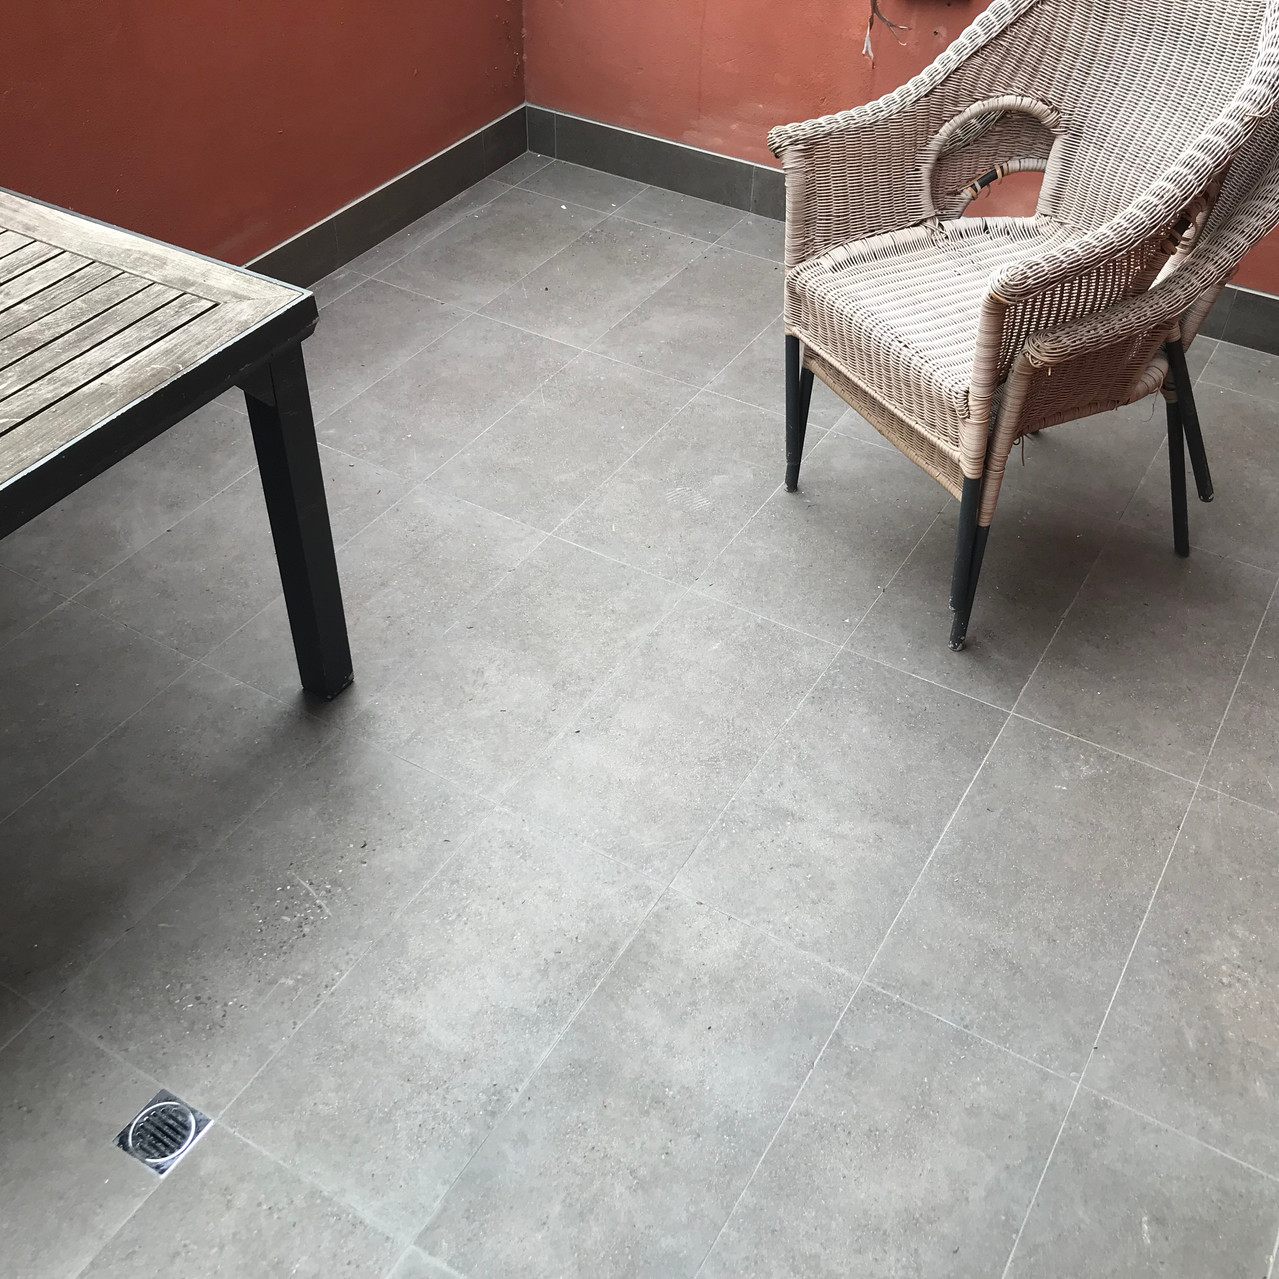 Conspar waterproofing and tiling works at this Northbridge apartment in Perth. The works involved removing the original tiles and screed, installing new screed and adequate falls, tiles and ensuring functioning drainage systems to prevent pooling.